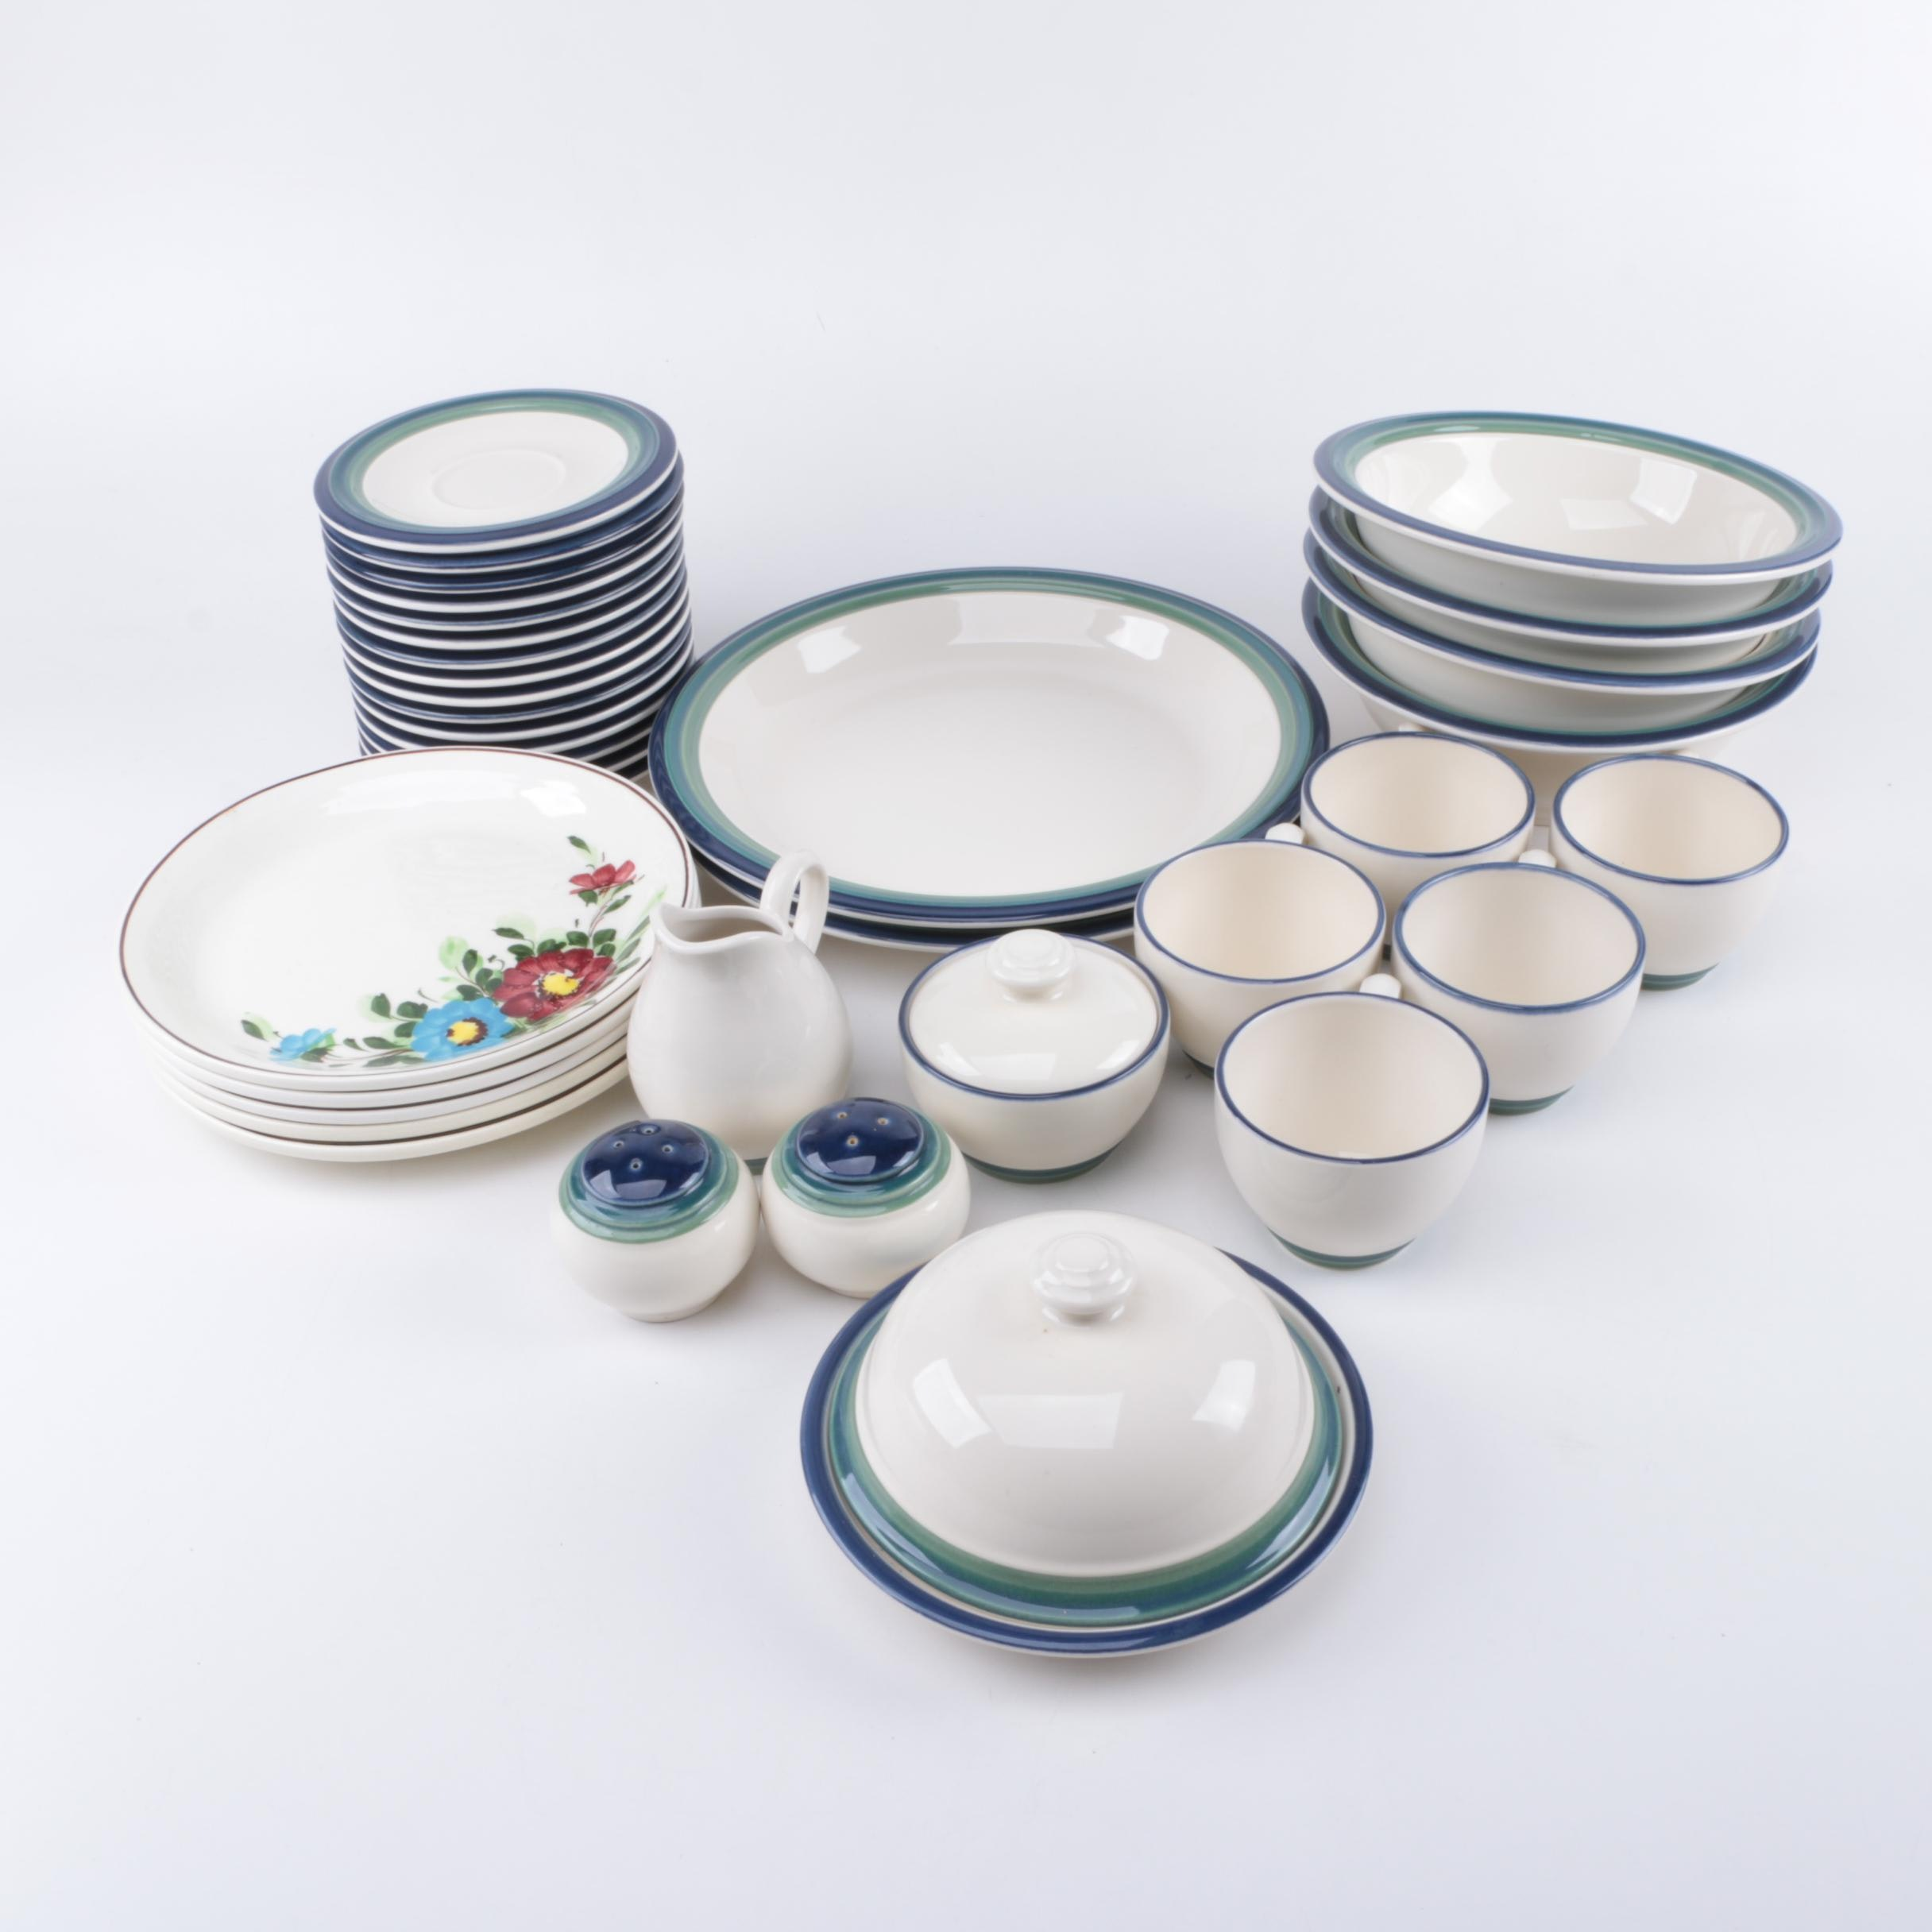 Pfaltzgraff  Ocean Breeze  Tableware ... : pfaltzgraff ocean breeze dinner plate - pezcame.com